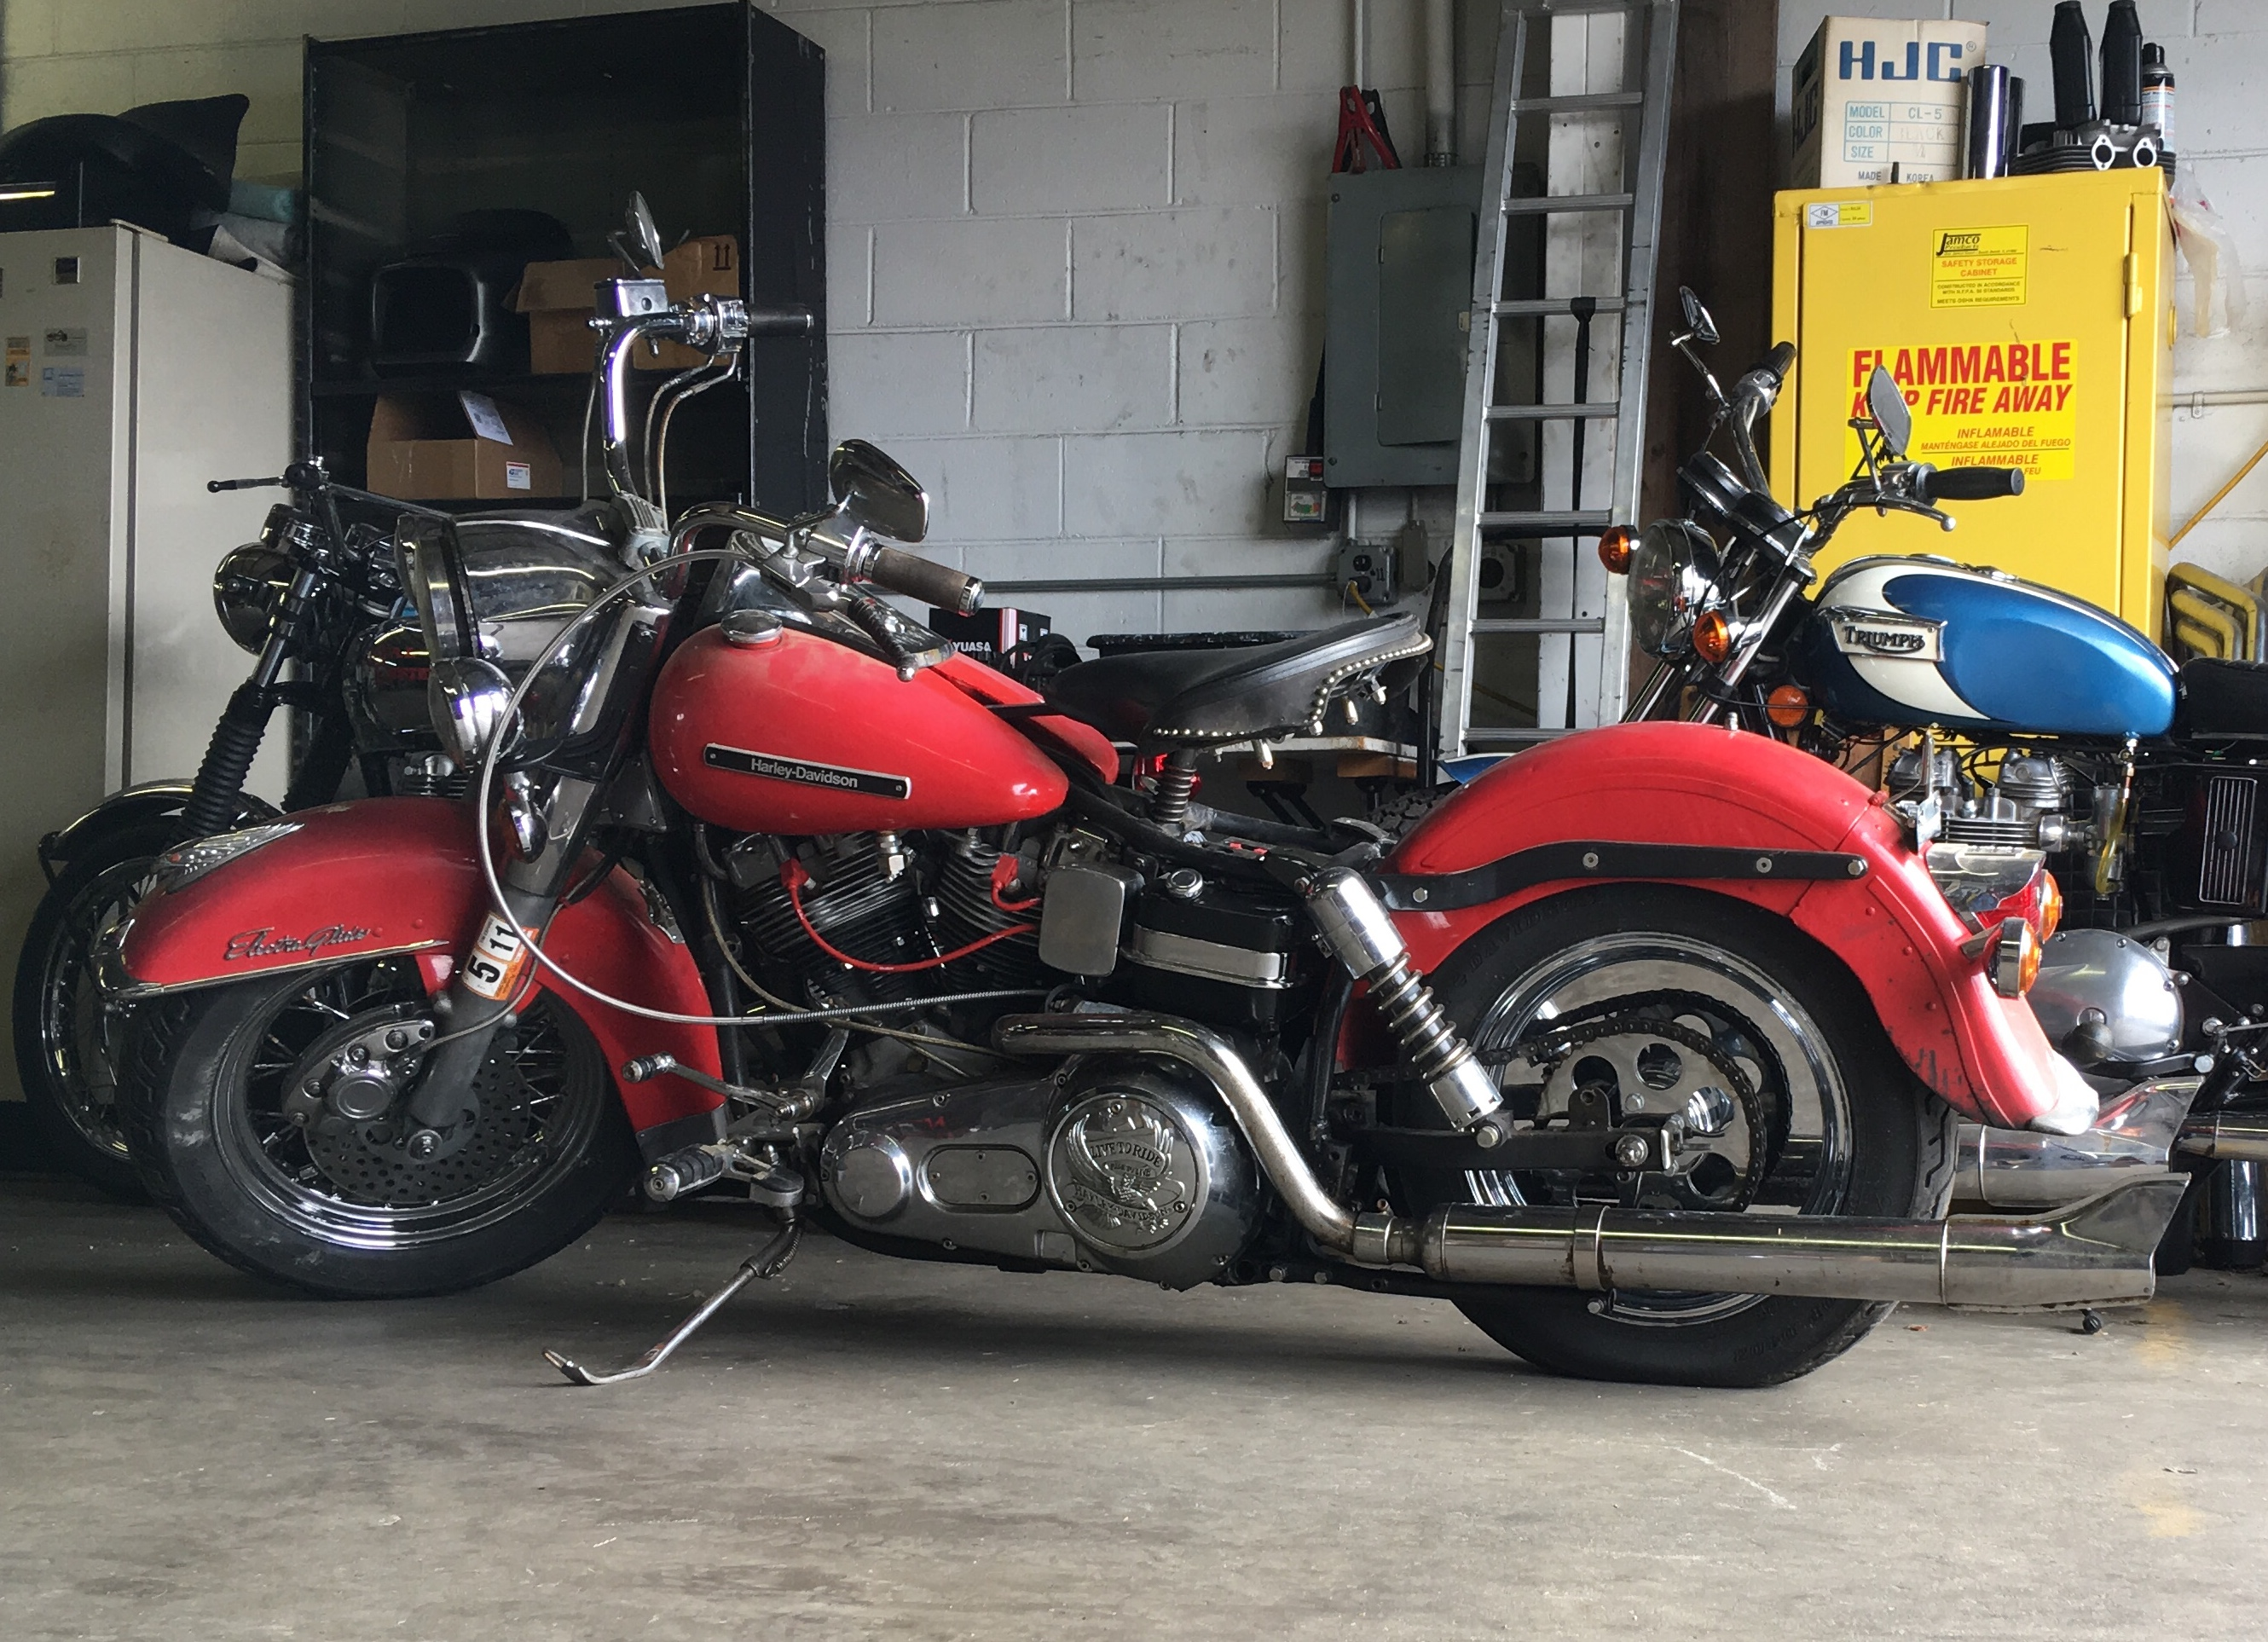 1979 FLH Electra Glide in patina | G6 MotoSports Motorcycle ... Harley Flh Wire Harness on